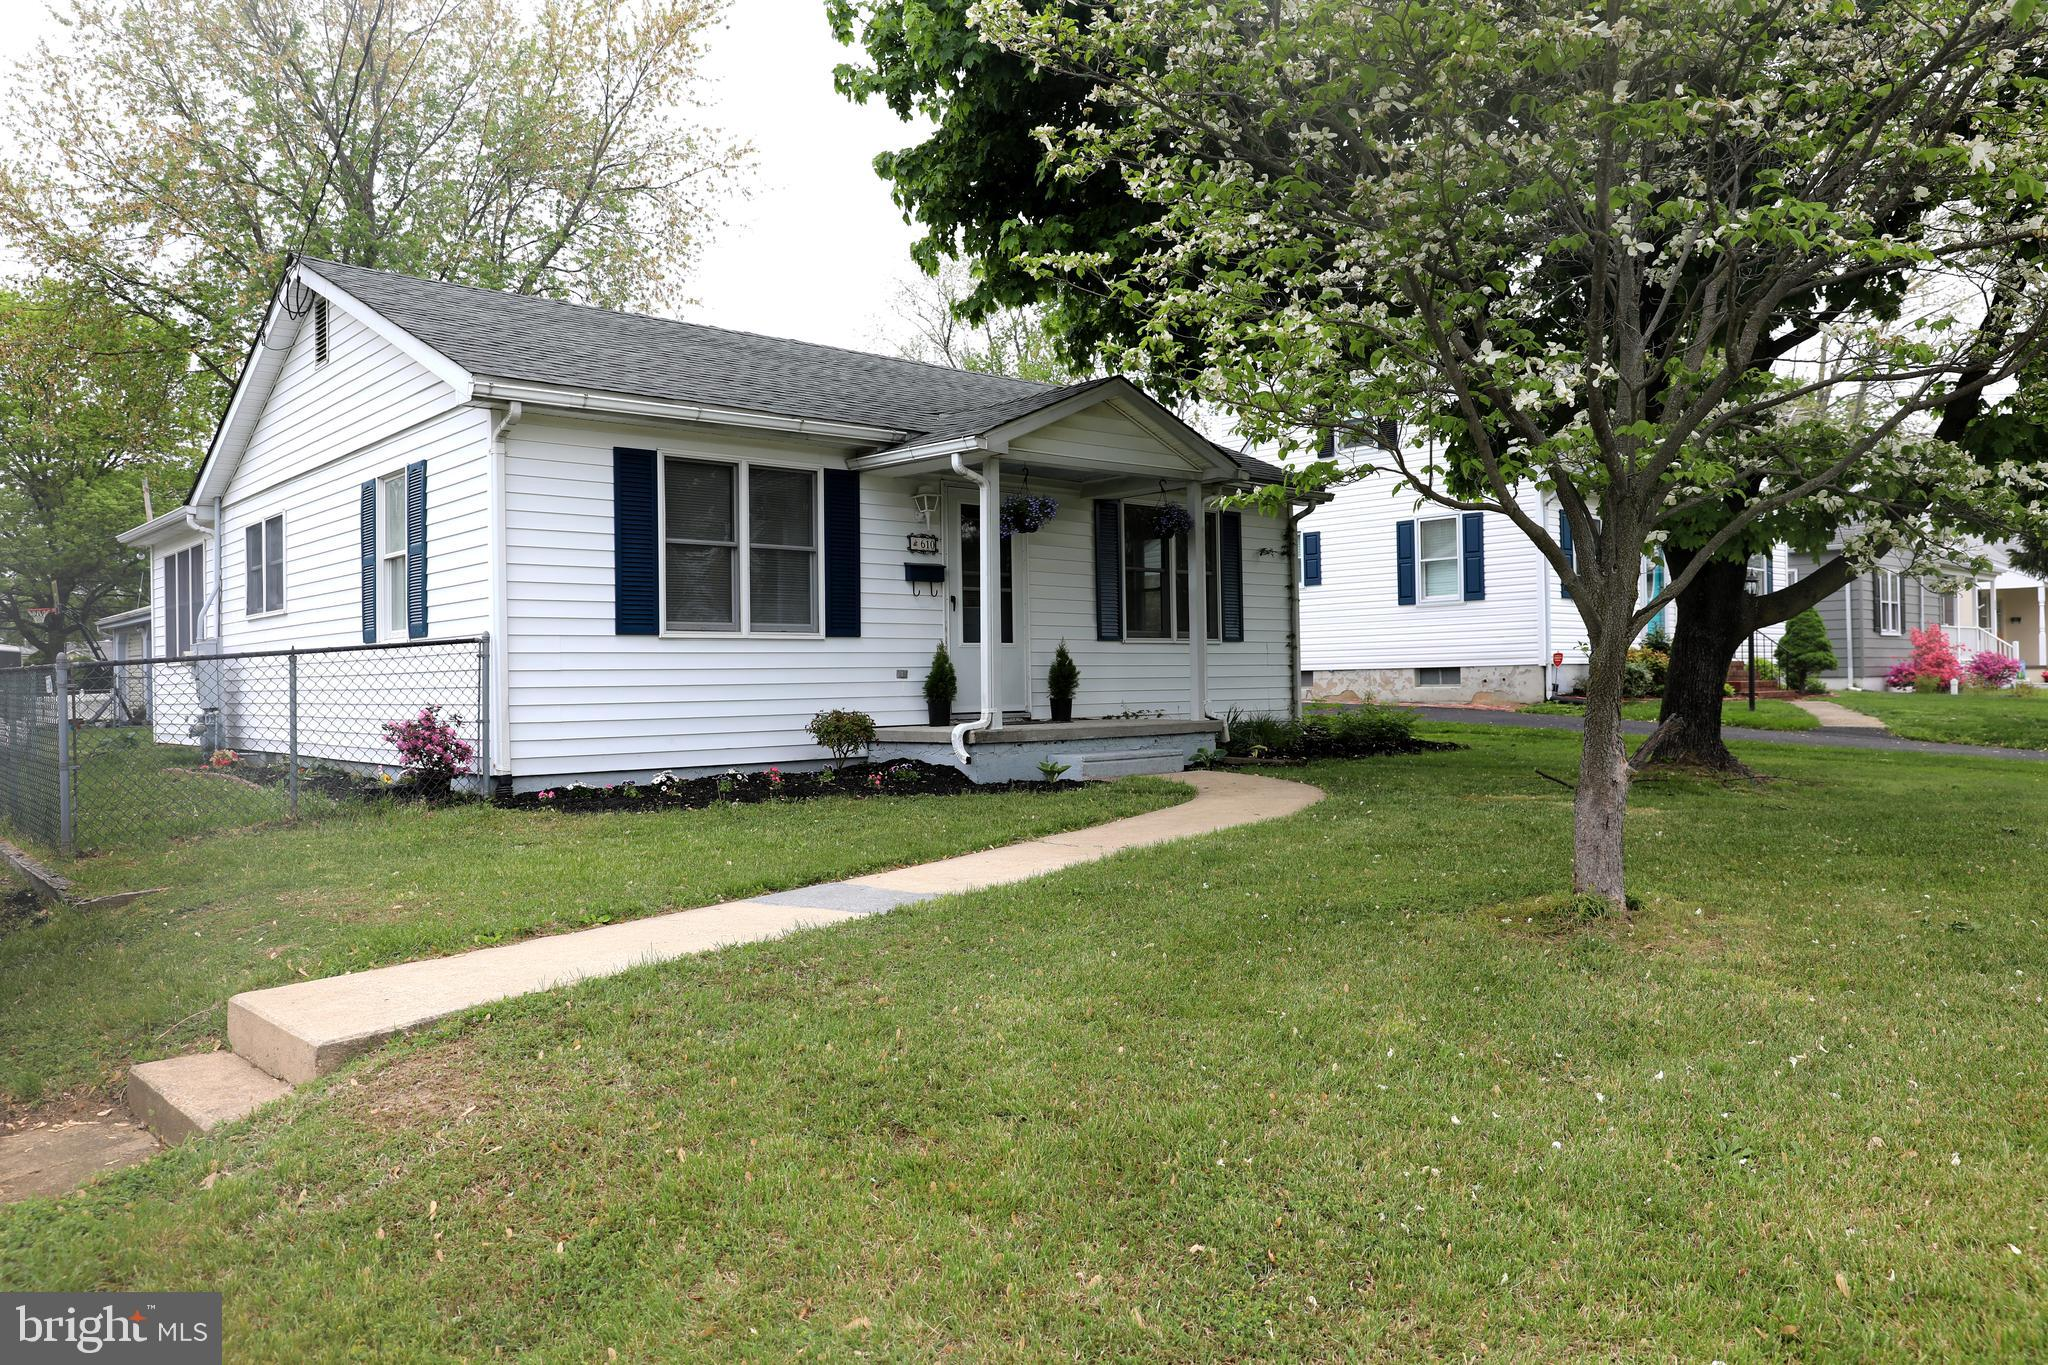 Adorable cape code on corner lot close to town conveniences.  Home offers 2 bedrooms (currently usin